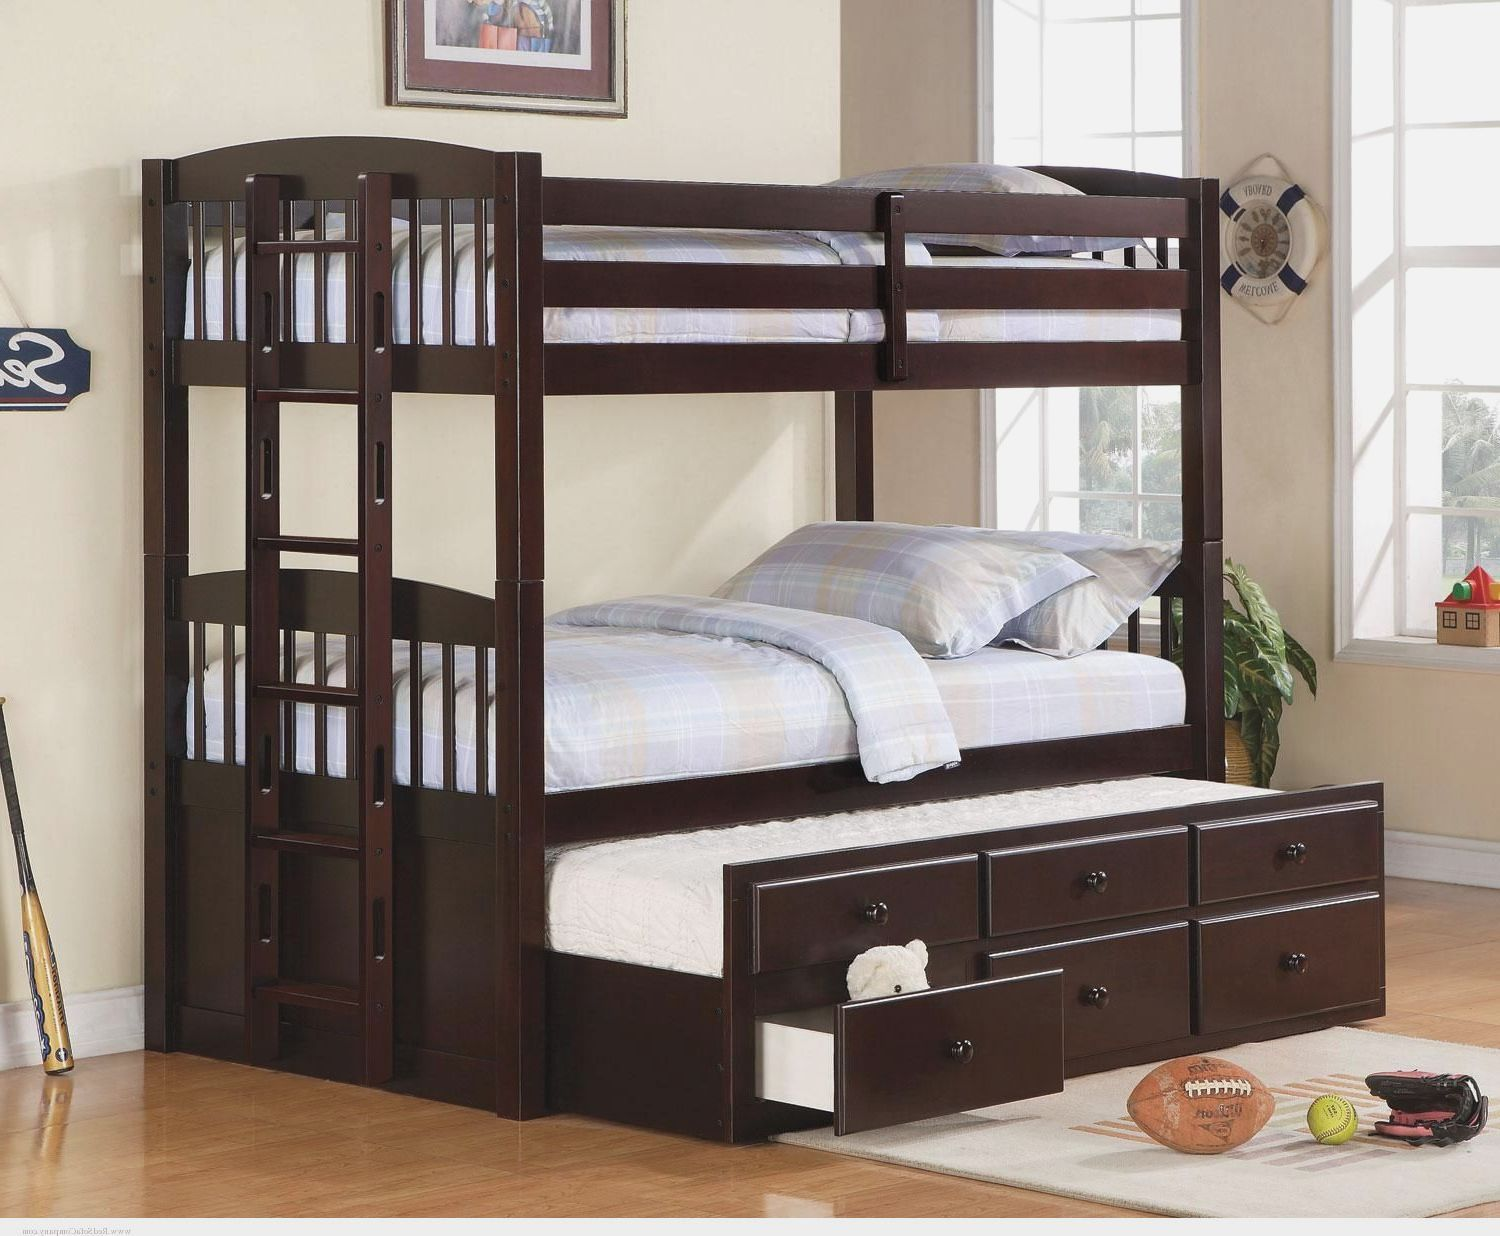 Double Deck Bed For Kids more picture Double Deck Bed For Kids ... for Kids Double Bed With Trundle  14lpgtk